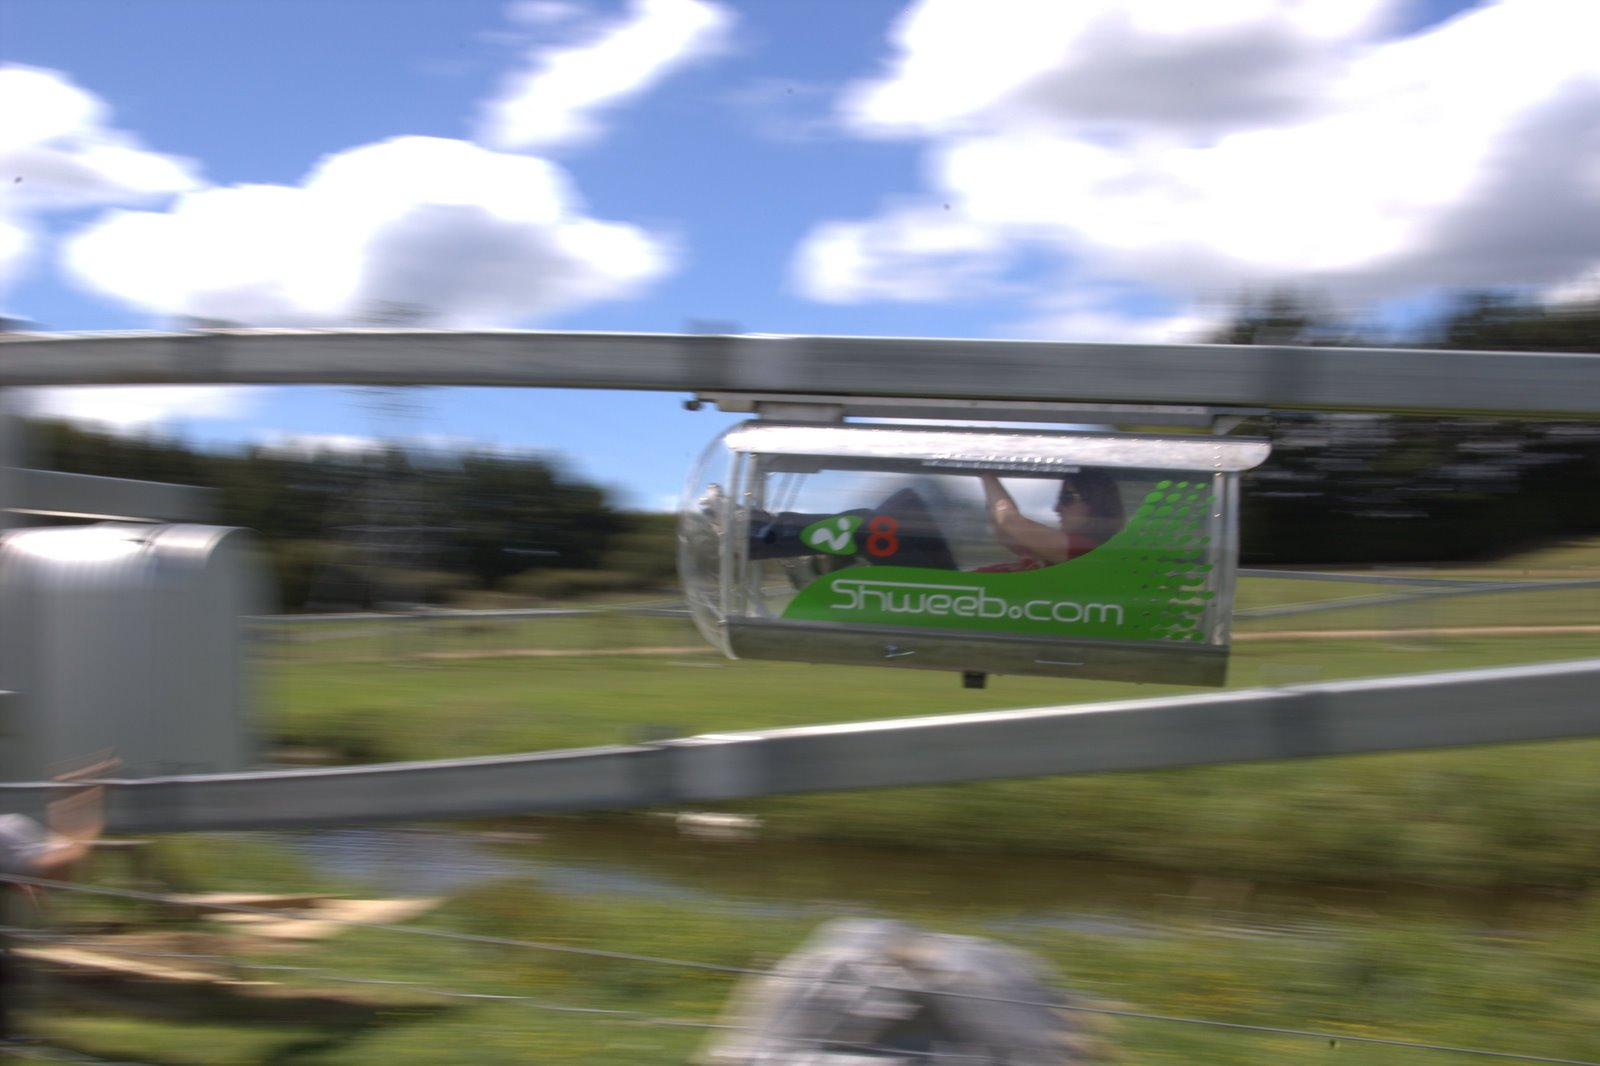 This Human-Powered Monorail is the Coolest Contraption Ever